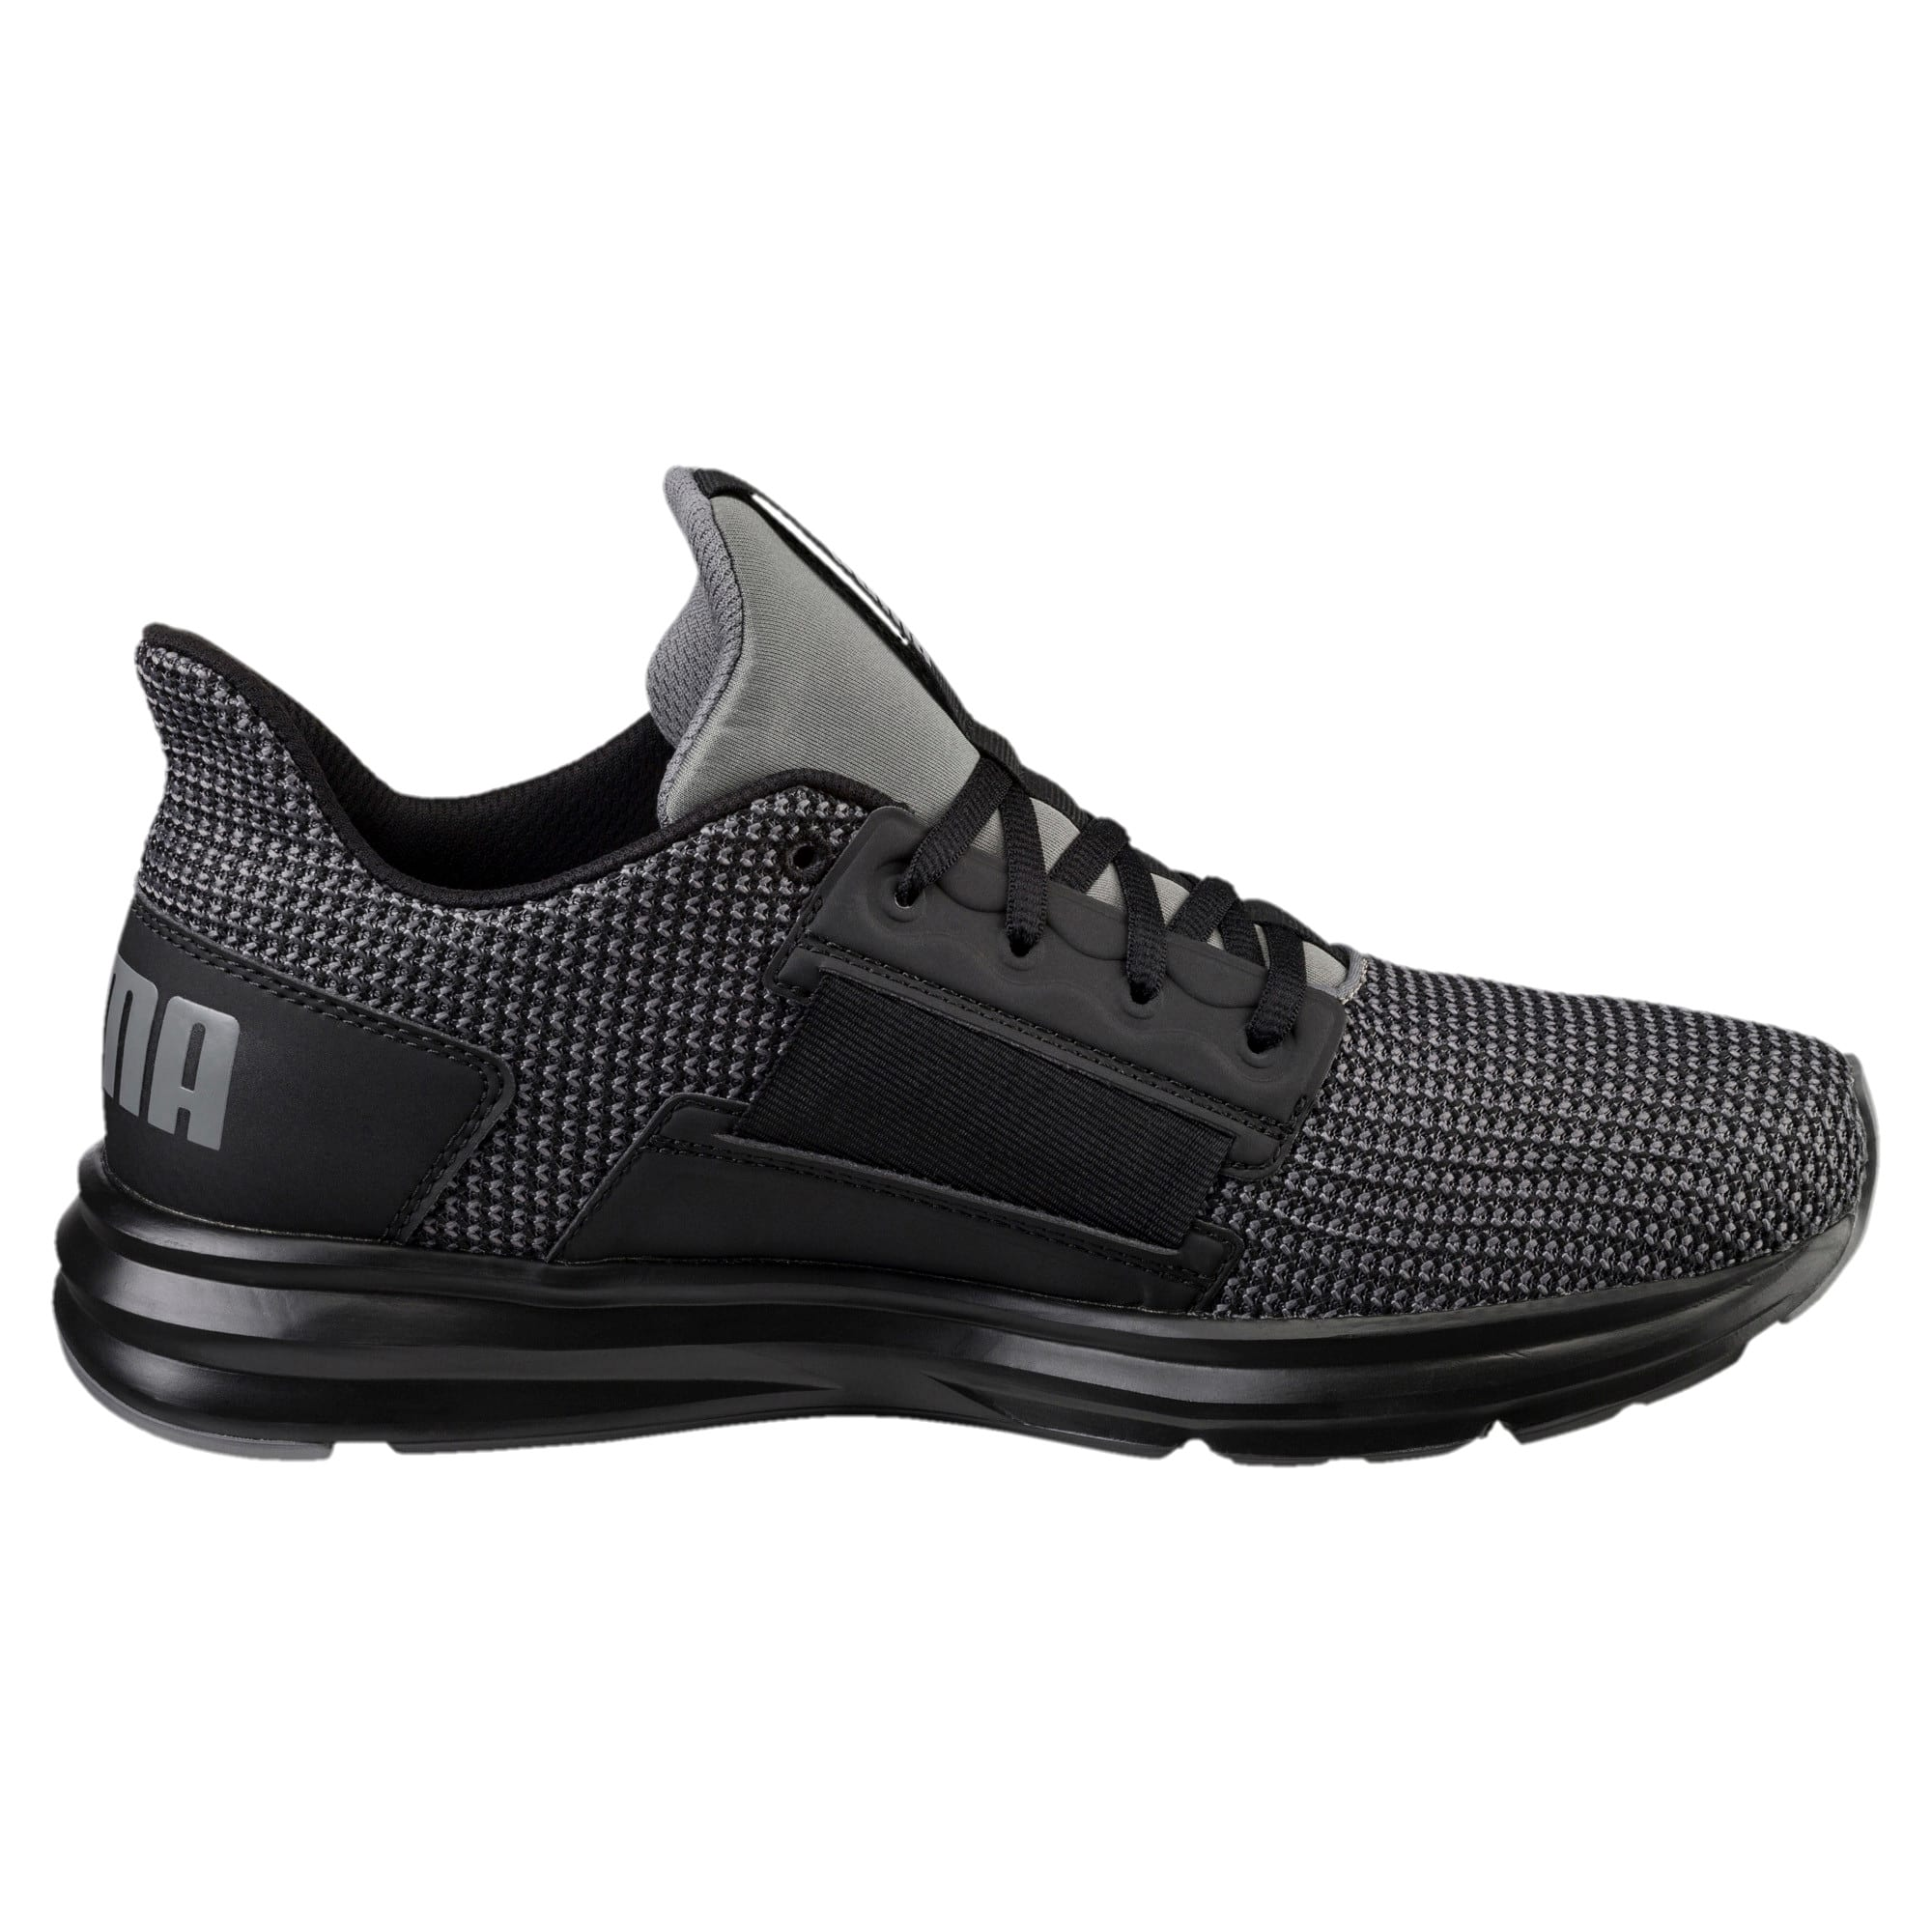 Thumbnail 4 of Enzo Street Knit Men's Running Shoes, QUIET SHADE-Puma Black, medium-IND